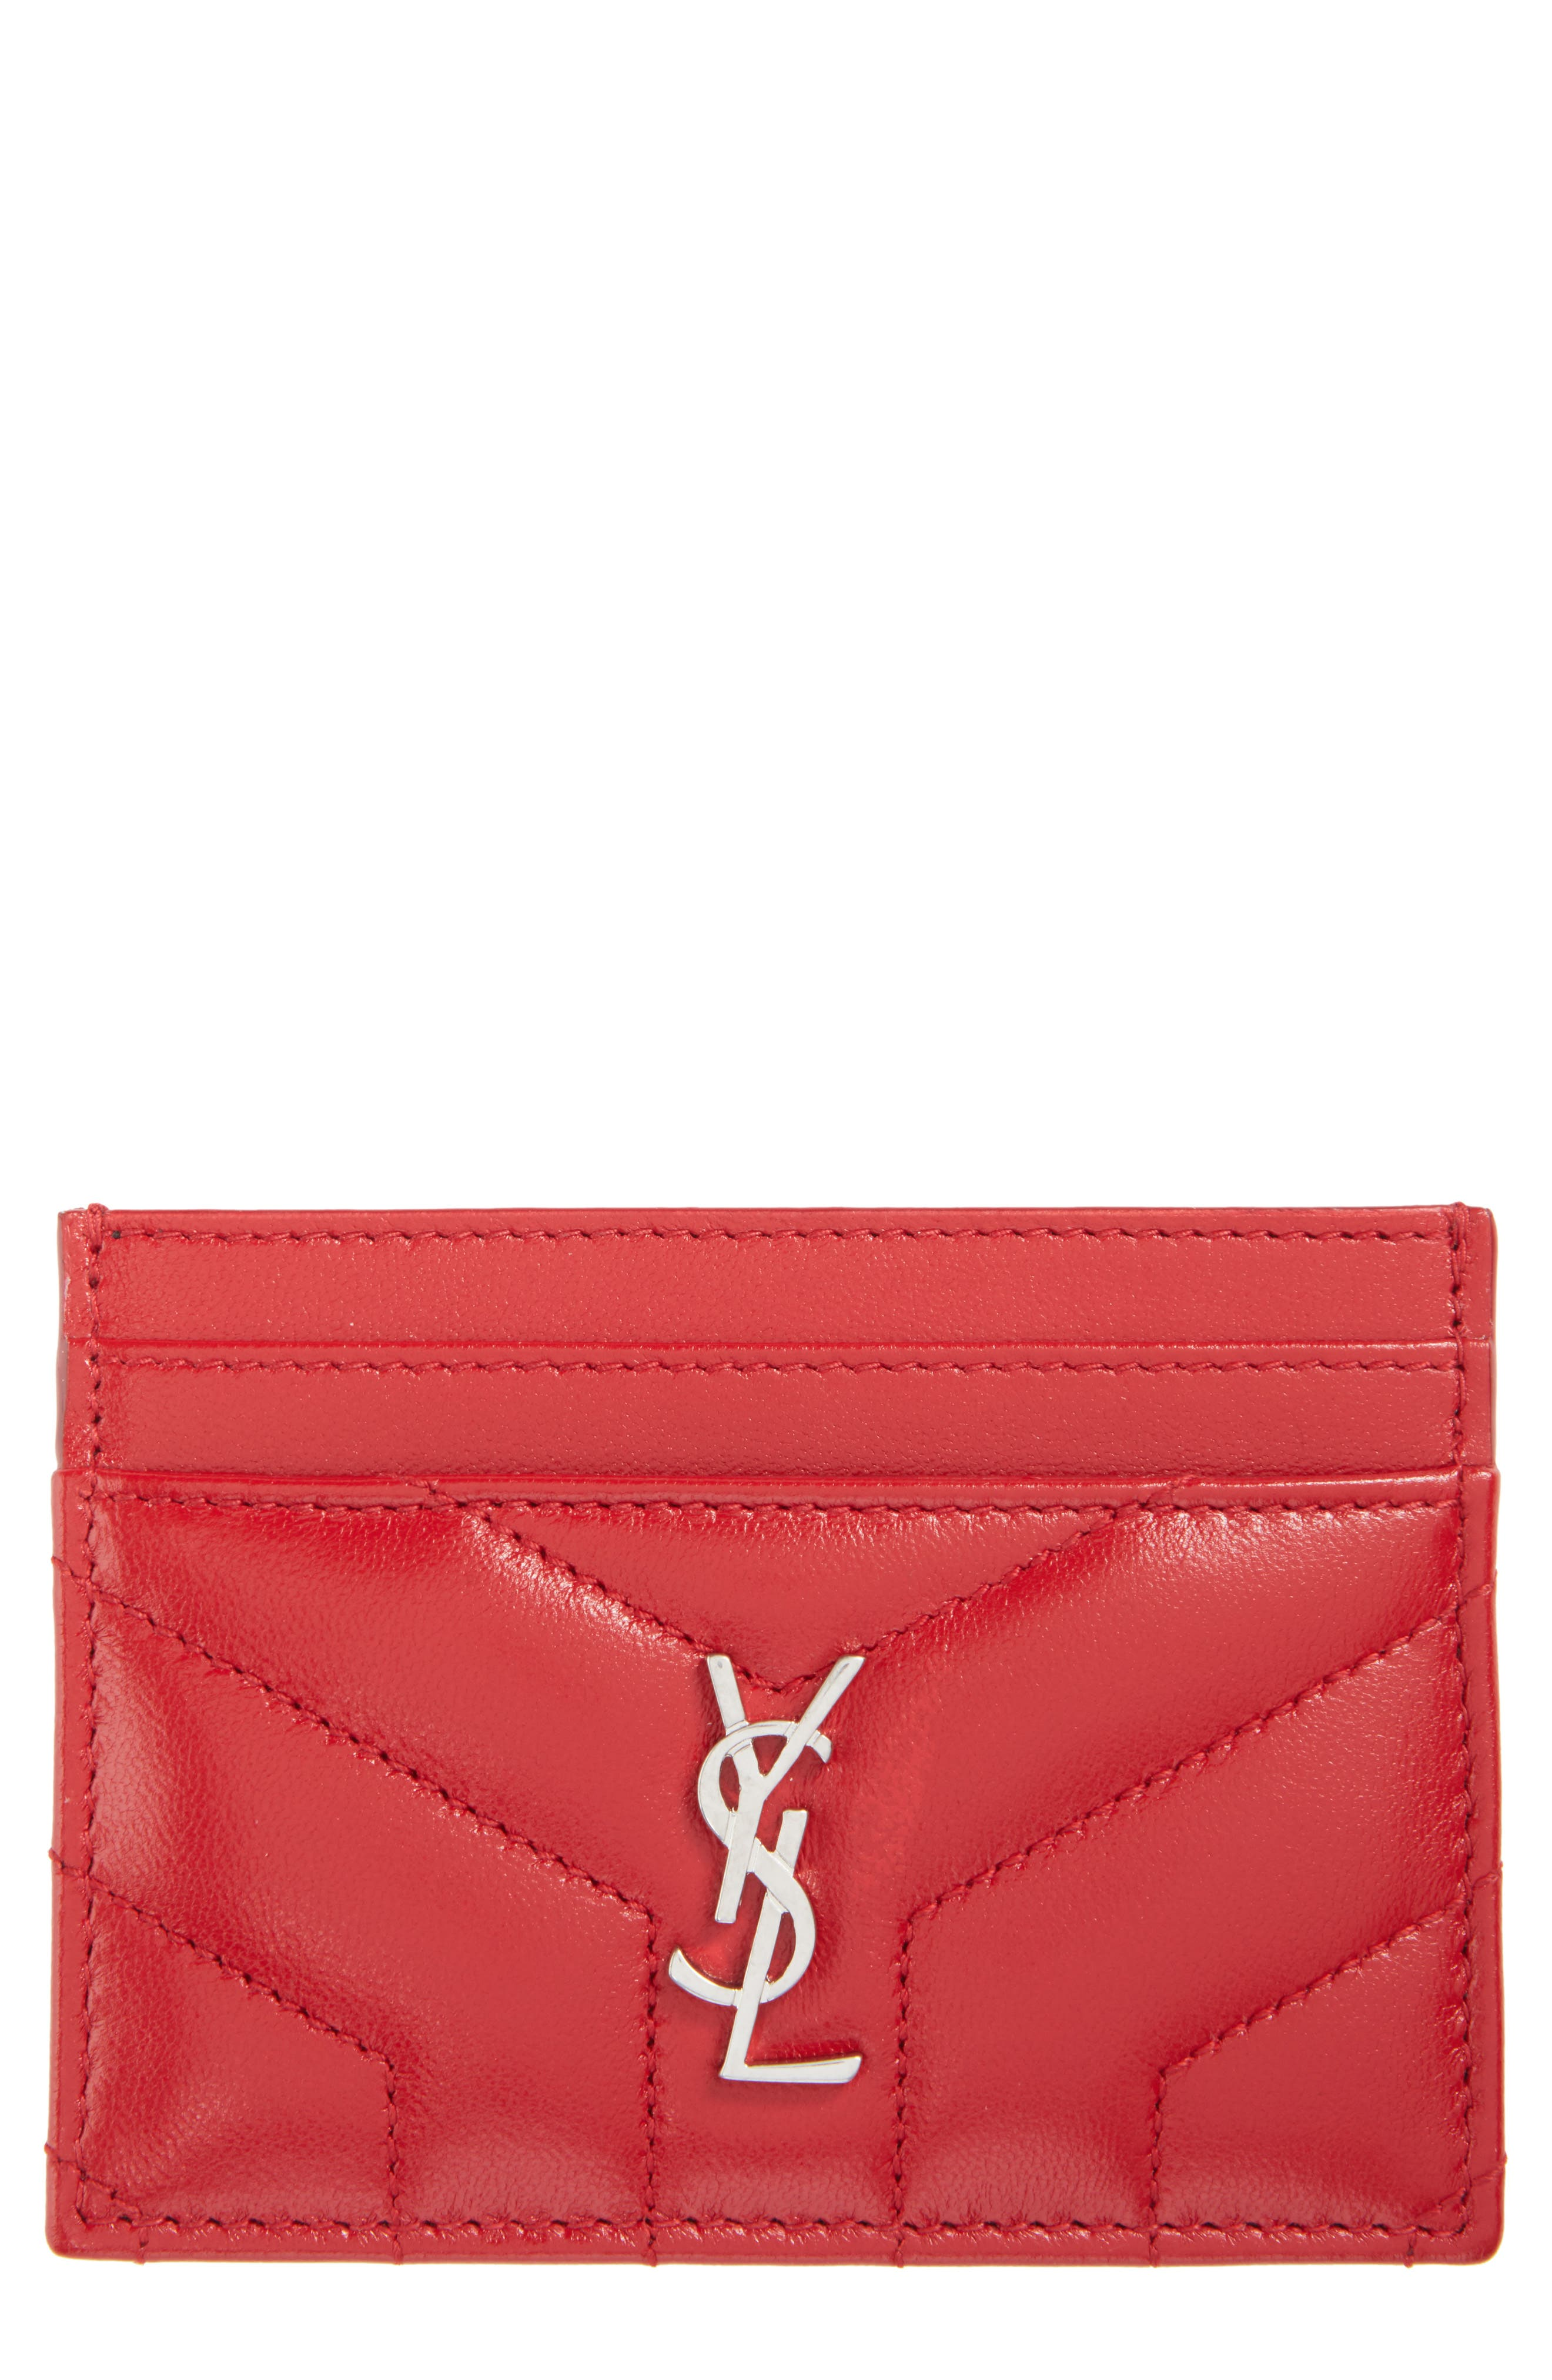 Main Image - Saint Laurent Loulou Monogram Quilted Leather Credit Card Case